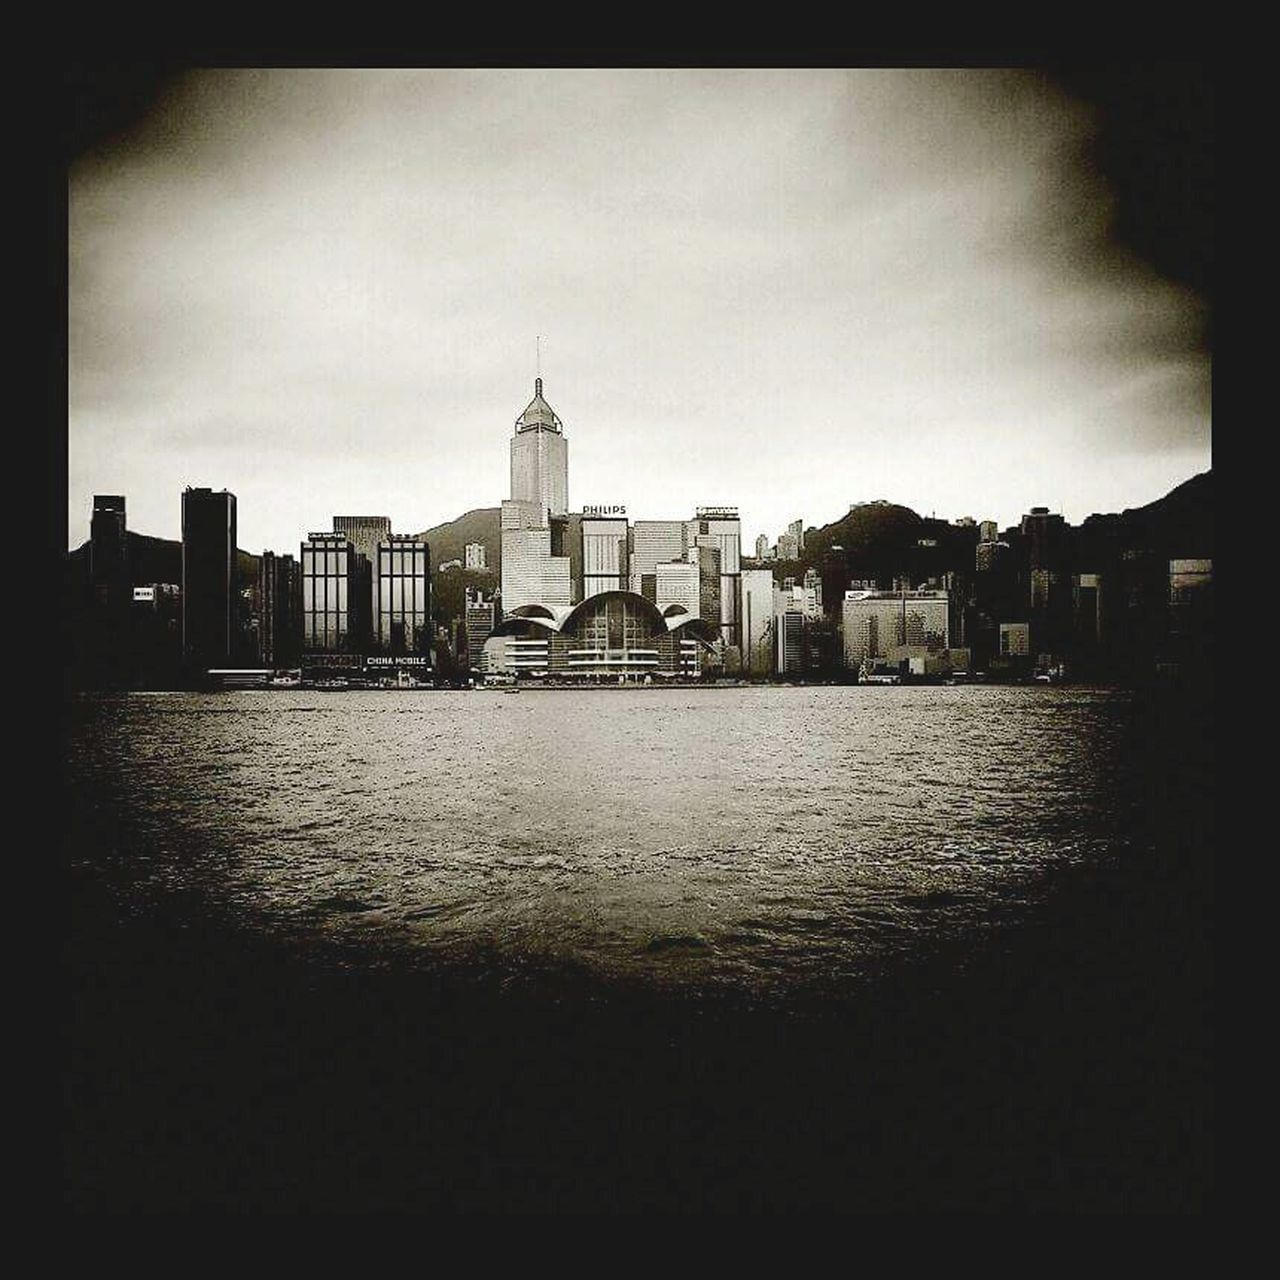 Blackandwhite Black And White Photography Buldings HongKong Hong Kong Victoria Harbour Ocean View Architecture Buildings & Sky Lomography Lomoeffect Holga Holga Photography